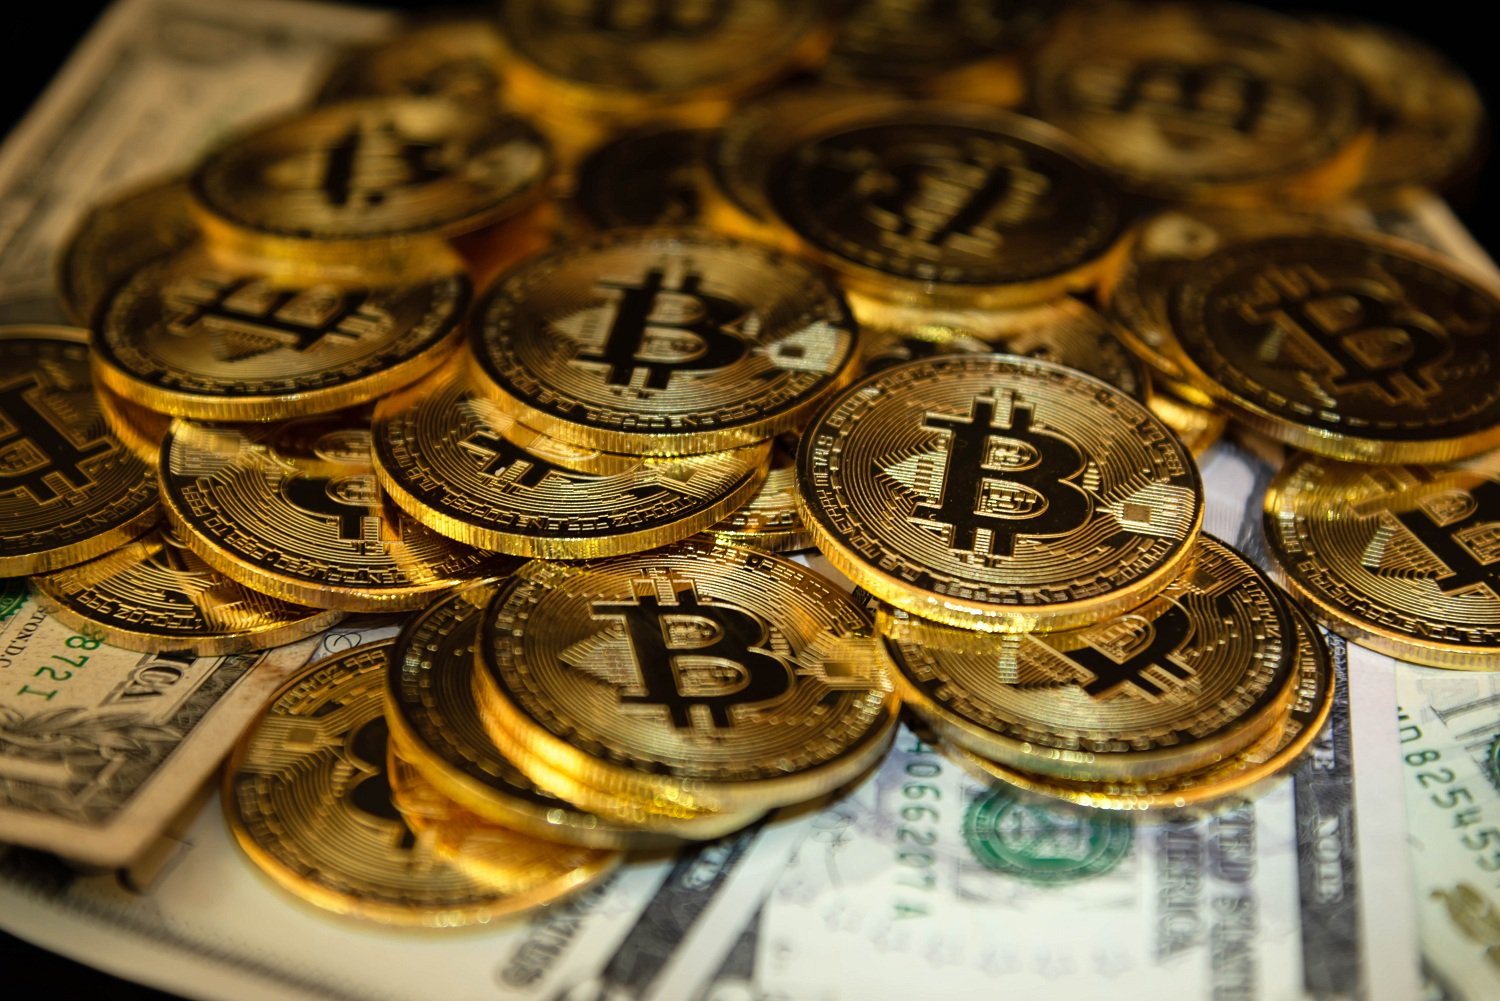 Bitcoin Price Makes Second Straight Monthly Loss in September - CoinDesk